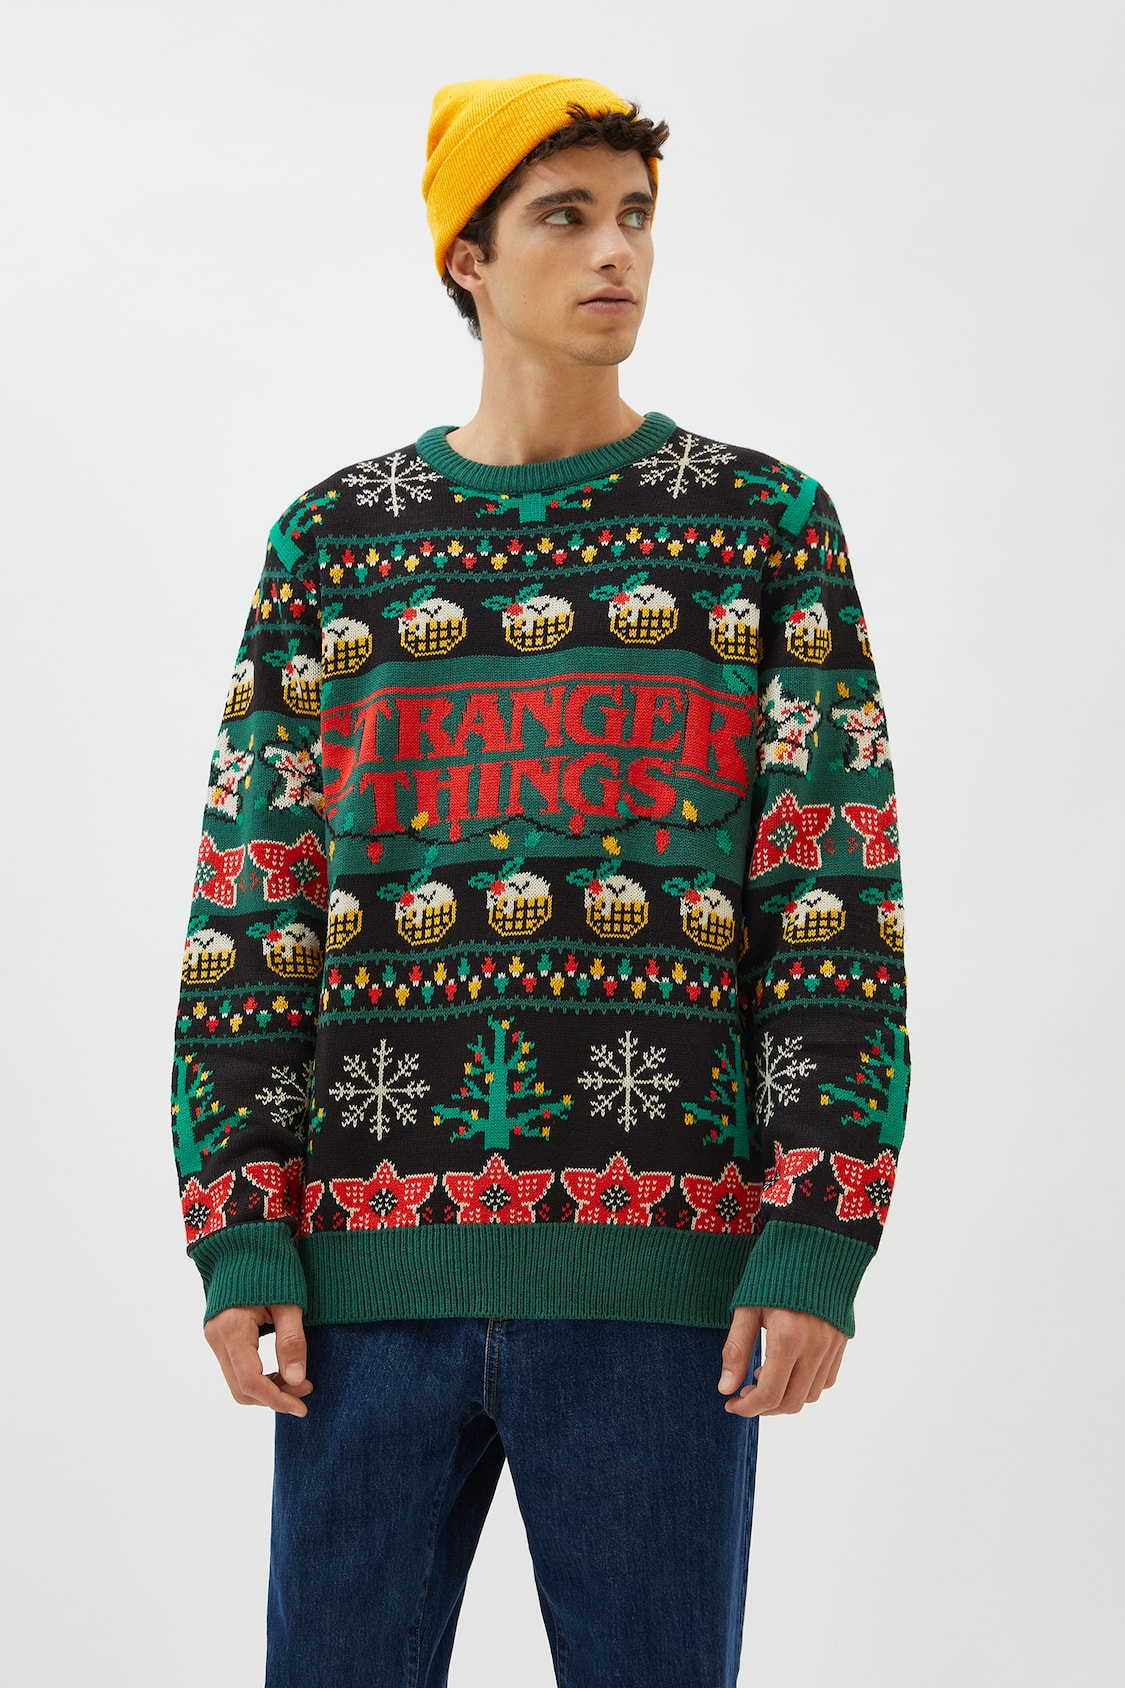 للتفاعل فارغ الرسوم Stranger Things Sweater Cabuildingbridges Org